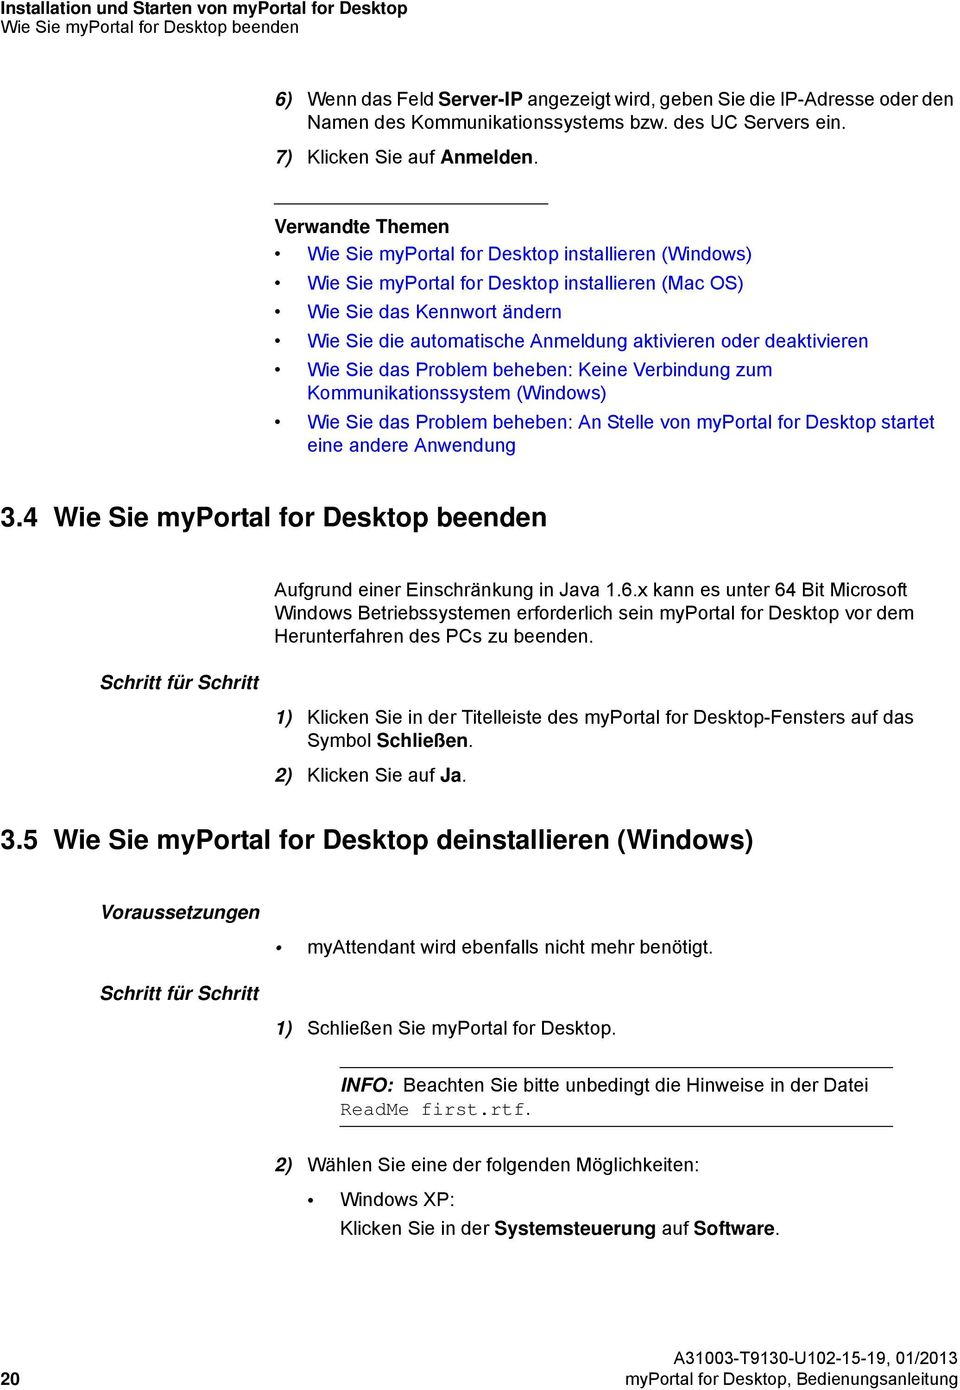 Wie Sie myportal for Desktop installieren (Windows) Wie Sie myportal for Desktop installieren (Mac OS) Wie Sie das Kennwort ändern Wie Sie die automatische Anmeldung aktivieren oder deaktivieren Wie